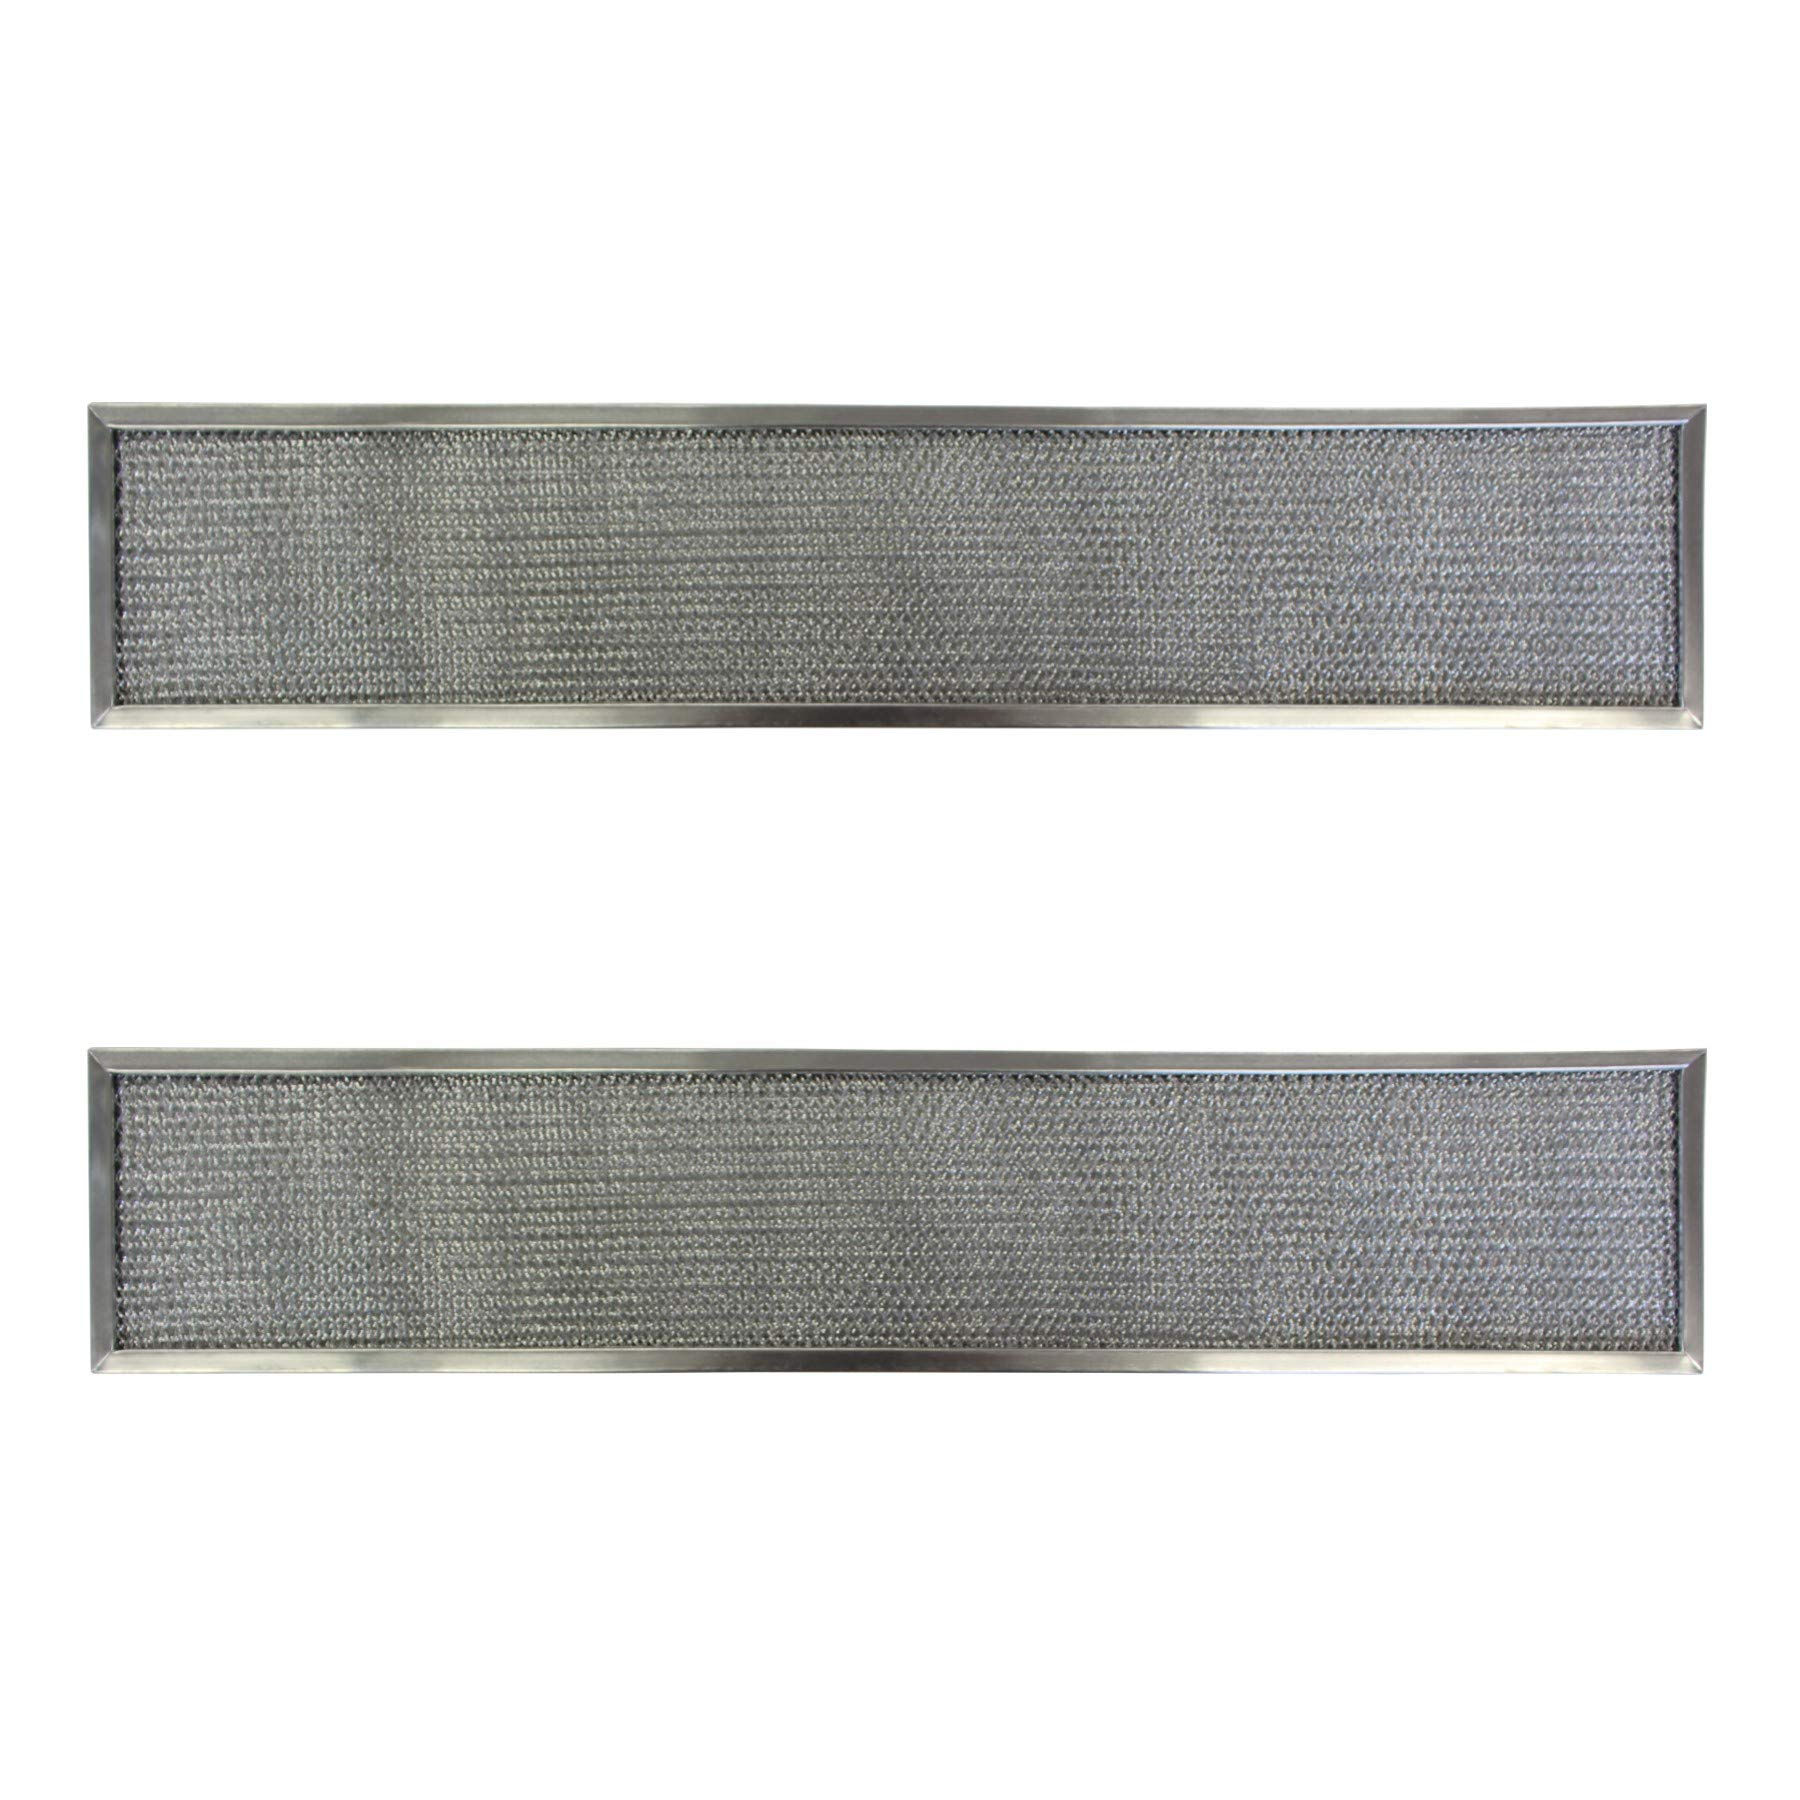 Replacement Aluminum Filters Compatible with Estate 4324168, Kitchenaid 4324168,G 8154,RHF0507  5 1/